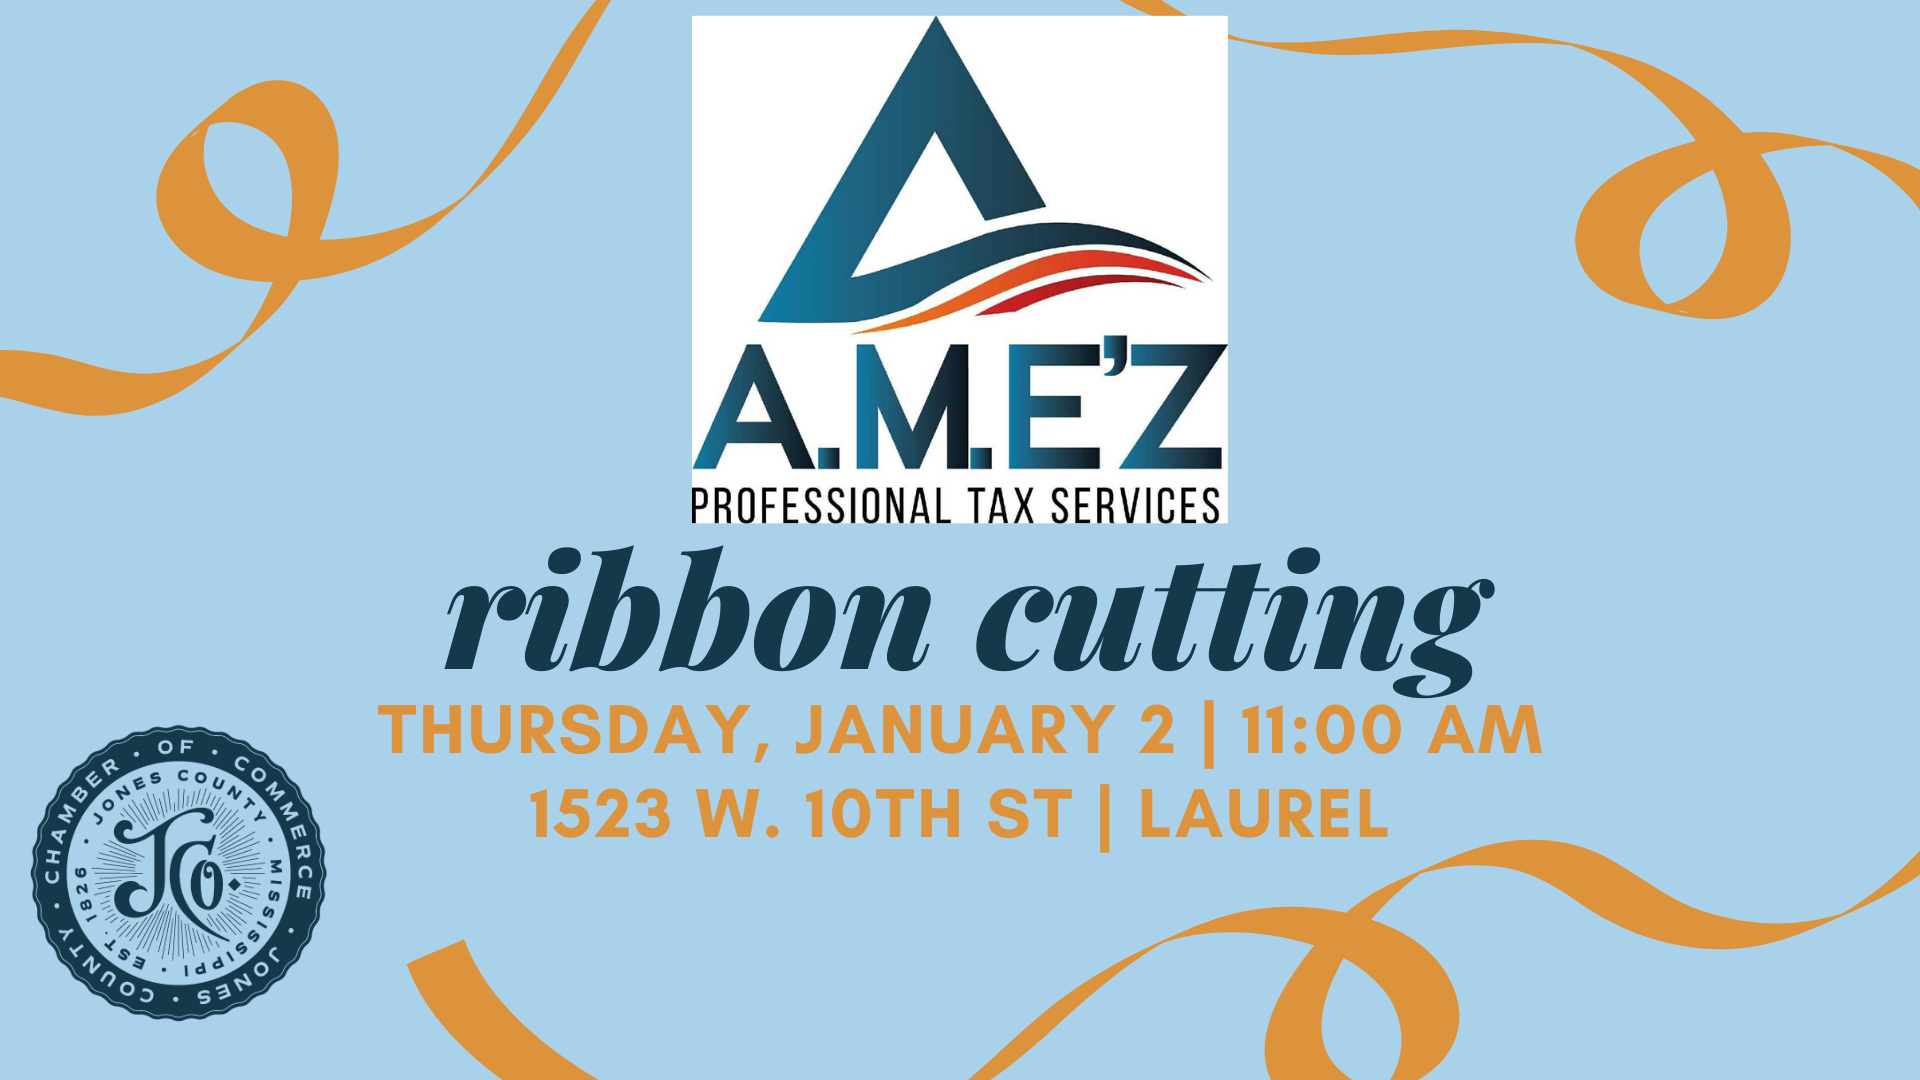 The City of Laurel, A.M. E'Z Professional Tax Services  Ribbon Cutting